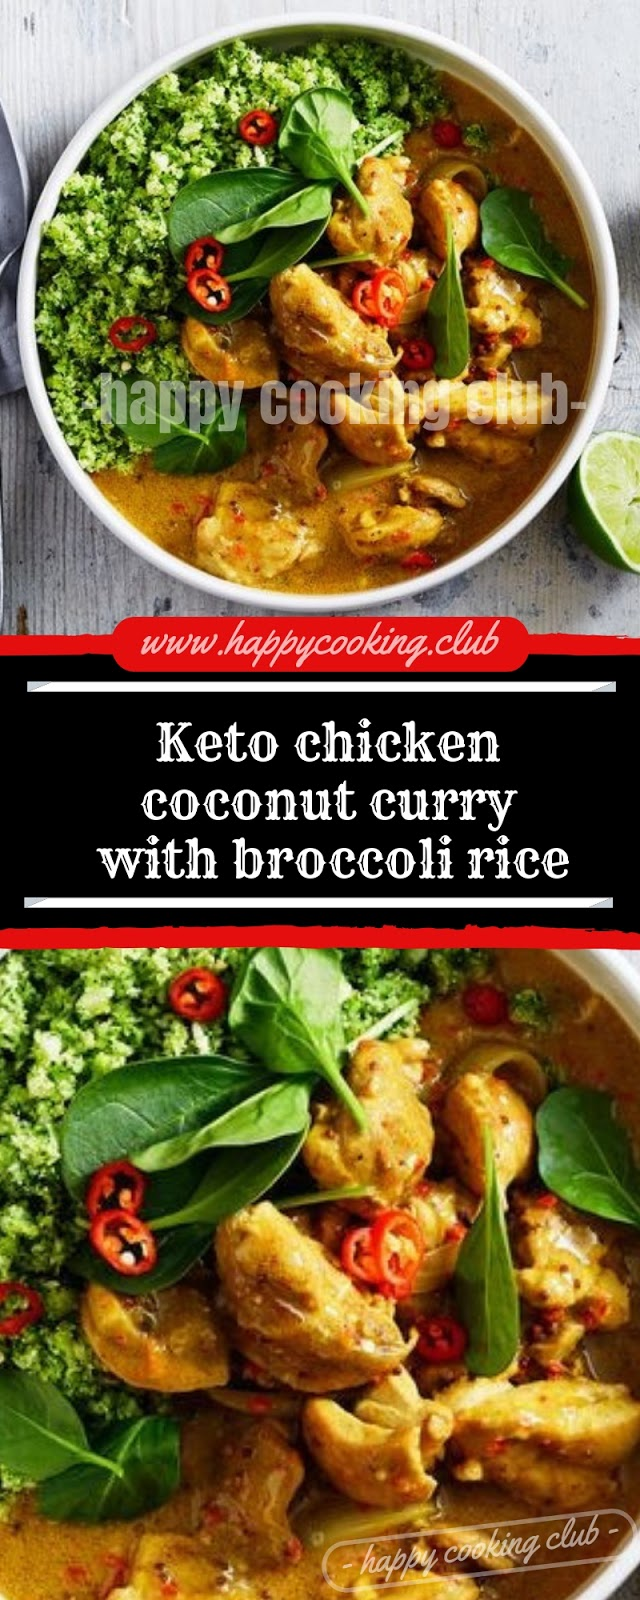 Keto chicken coconut curry with broccoli rice